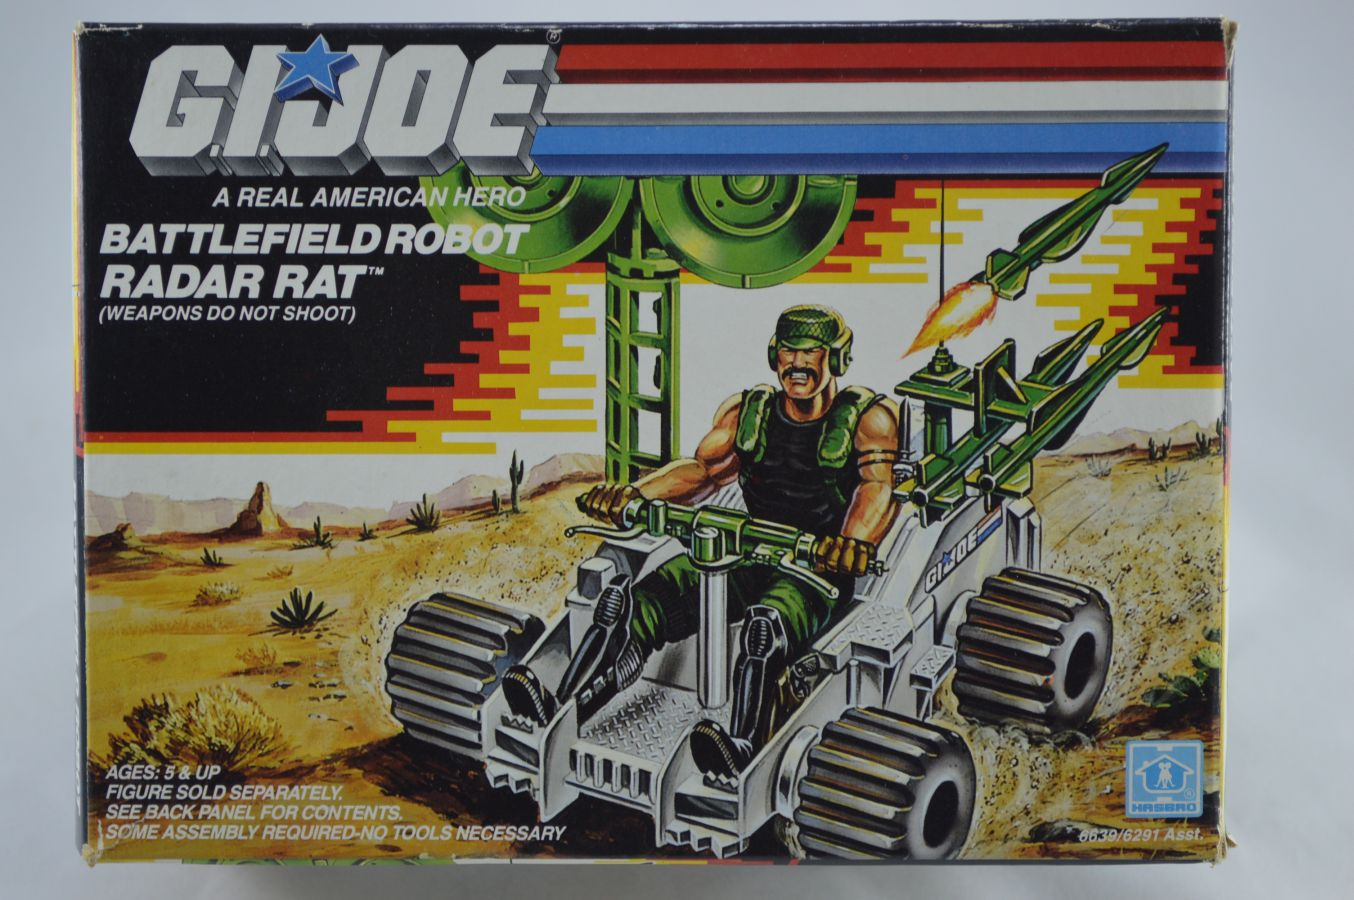 GI Joe Battlefield Robot Radar Rat Vehicle MIB Vintage